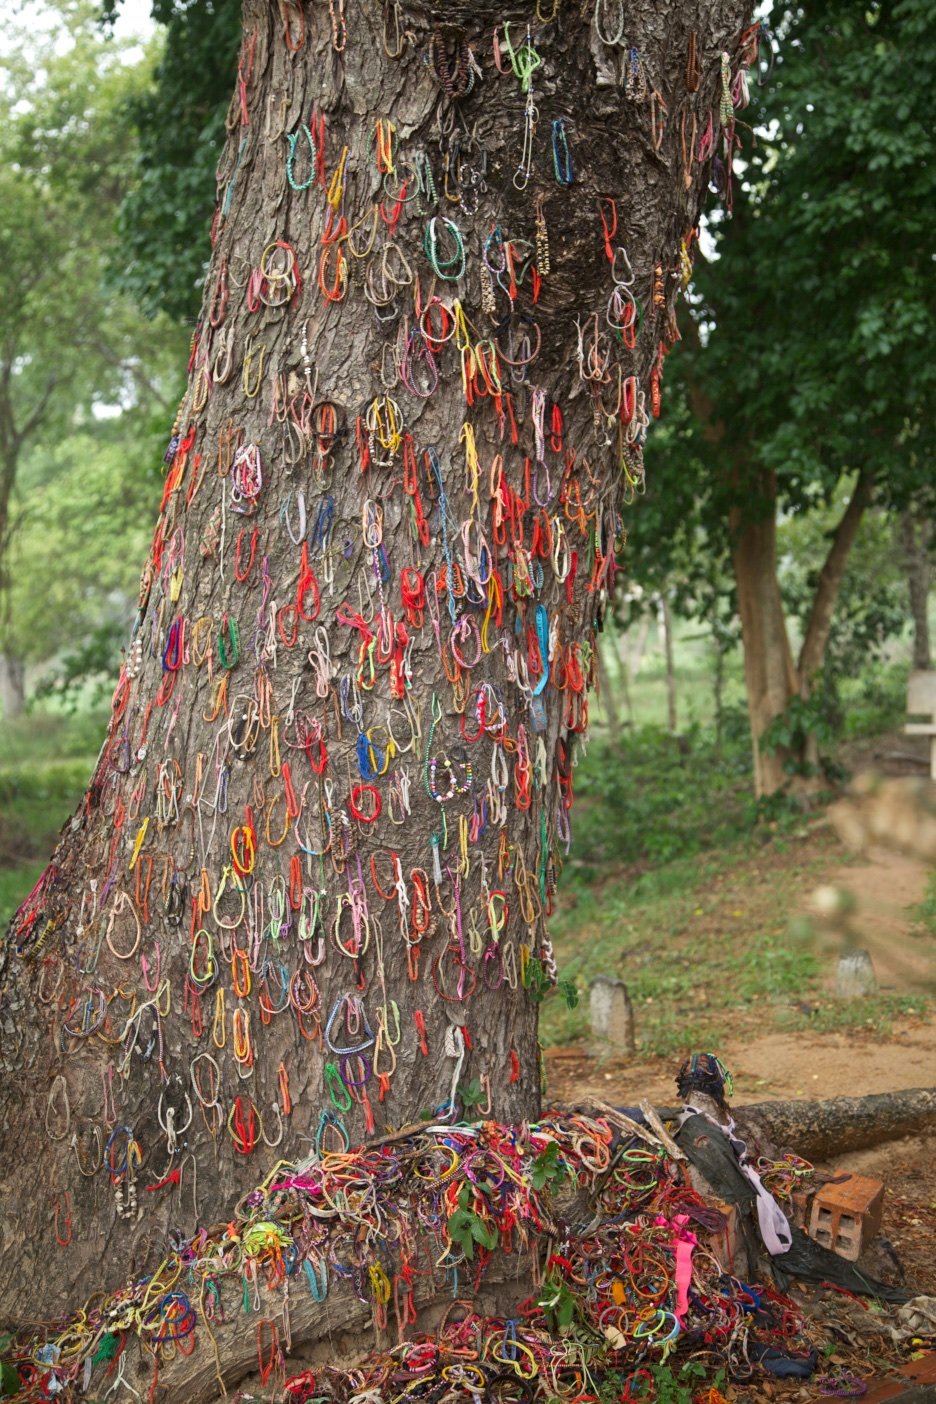 In remembrance of the children killed by being thrown against this very tree. The Killing Fields, Cambodia.